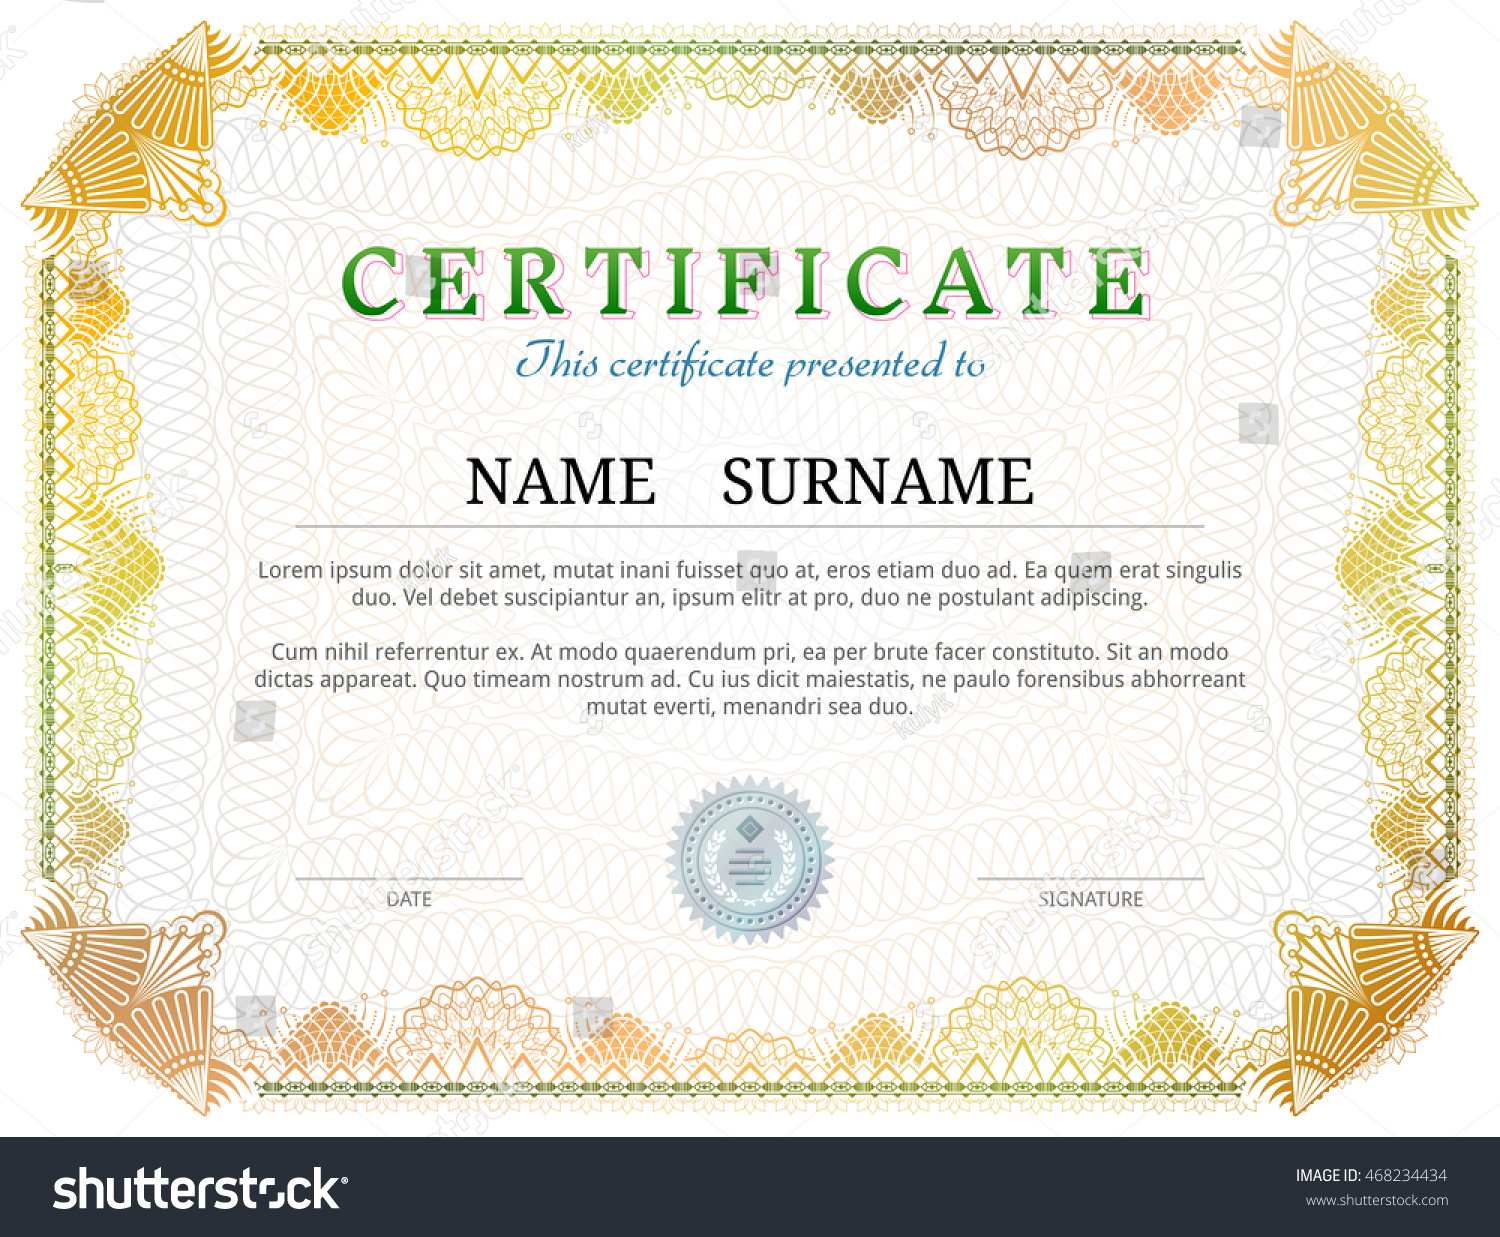 Scholarship certificate template word image free pamphlet football certificates templates uk choice image templates stock vector certificate template with guilloche elements yellow diploma yelopaper Choice Image